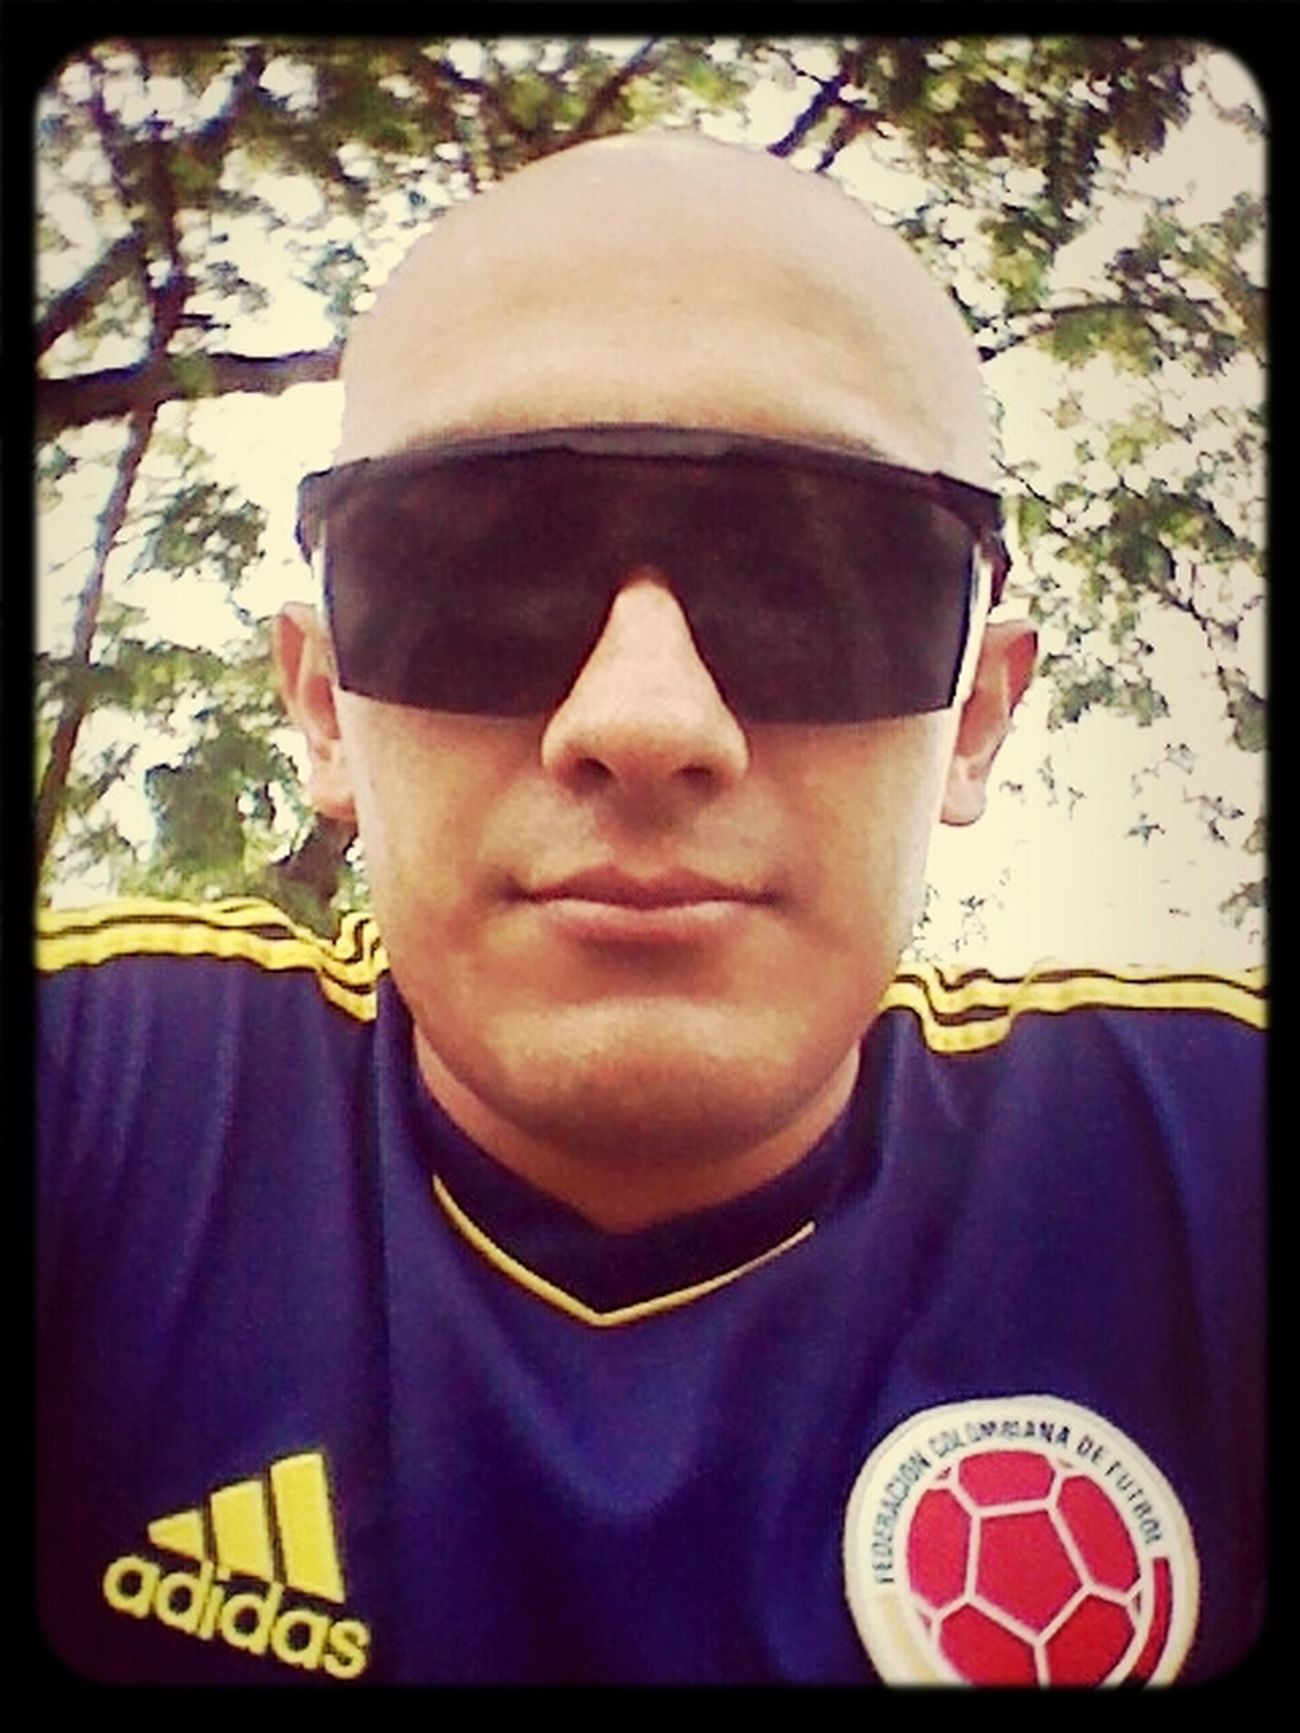 Traveling Mi Seleccion Colombia Adidas Sponser BampLex